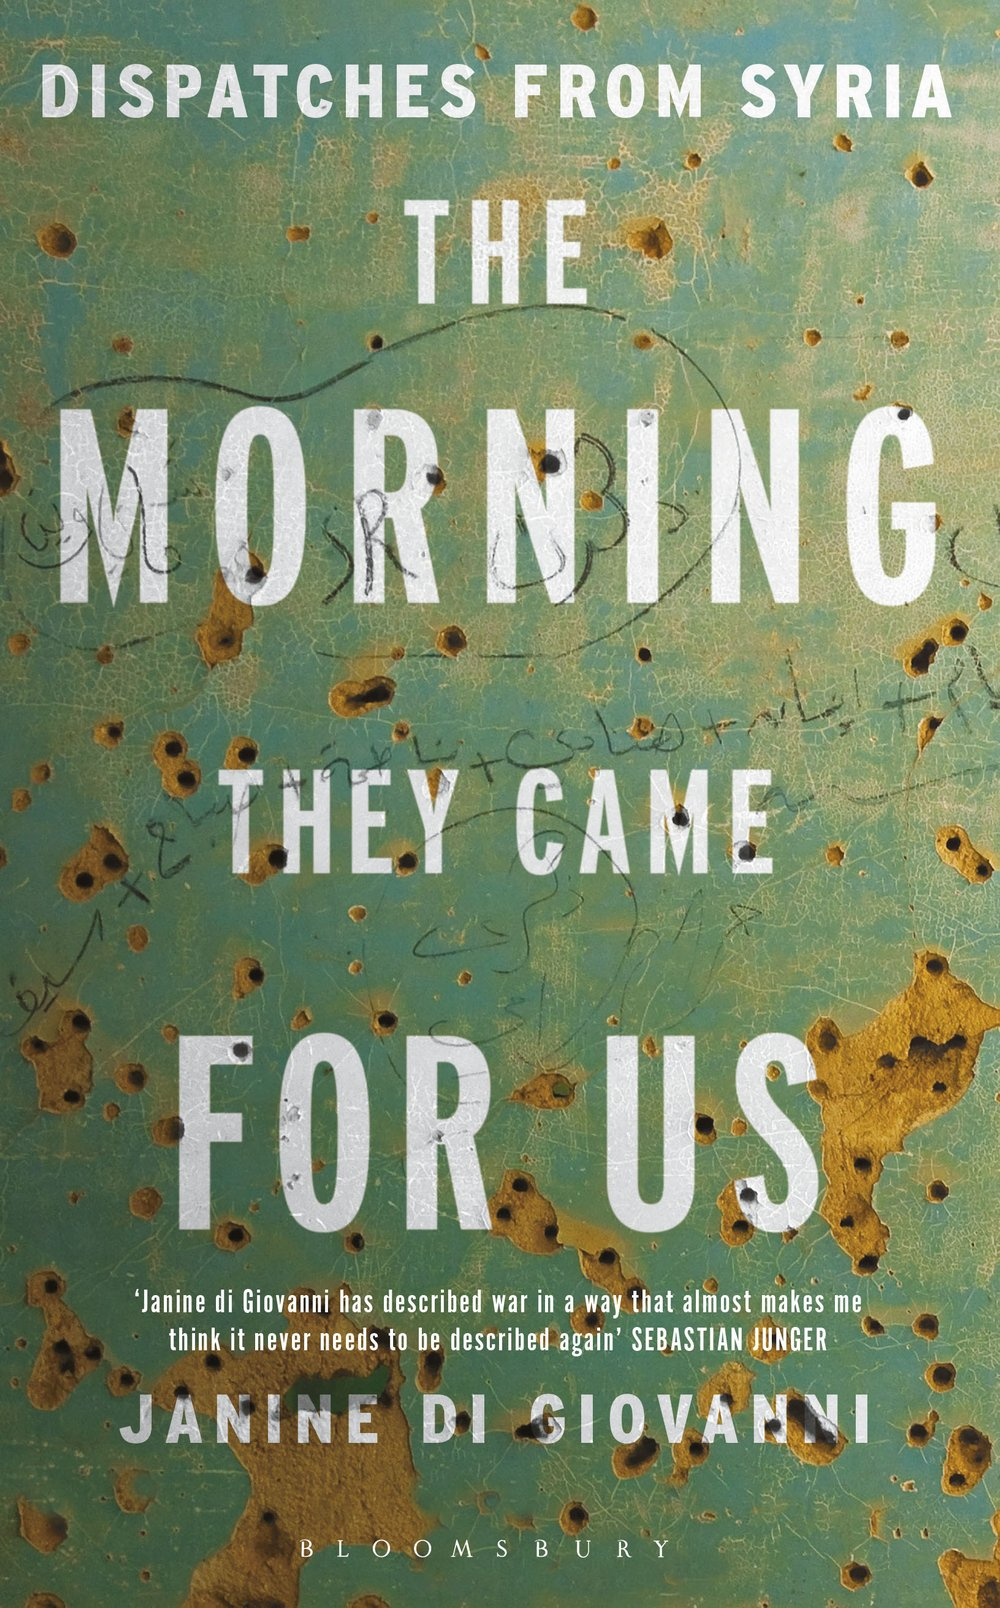 The Morning They Came For Us - Janine di Giovanni reports on how the war in Syria began and the impact it has on people. It is harrowing. Maybe even more than the previous book. Particularly brutal is realising how rape is commonly used as a weapon of war.